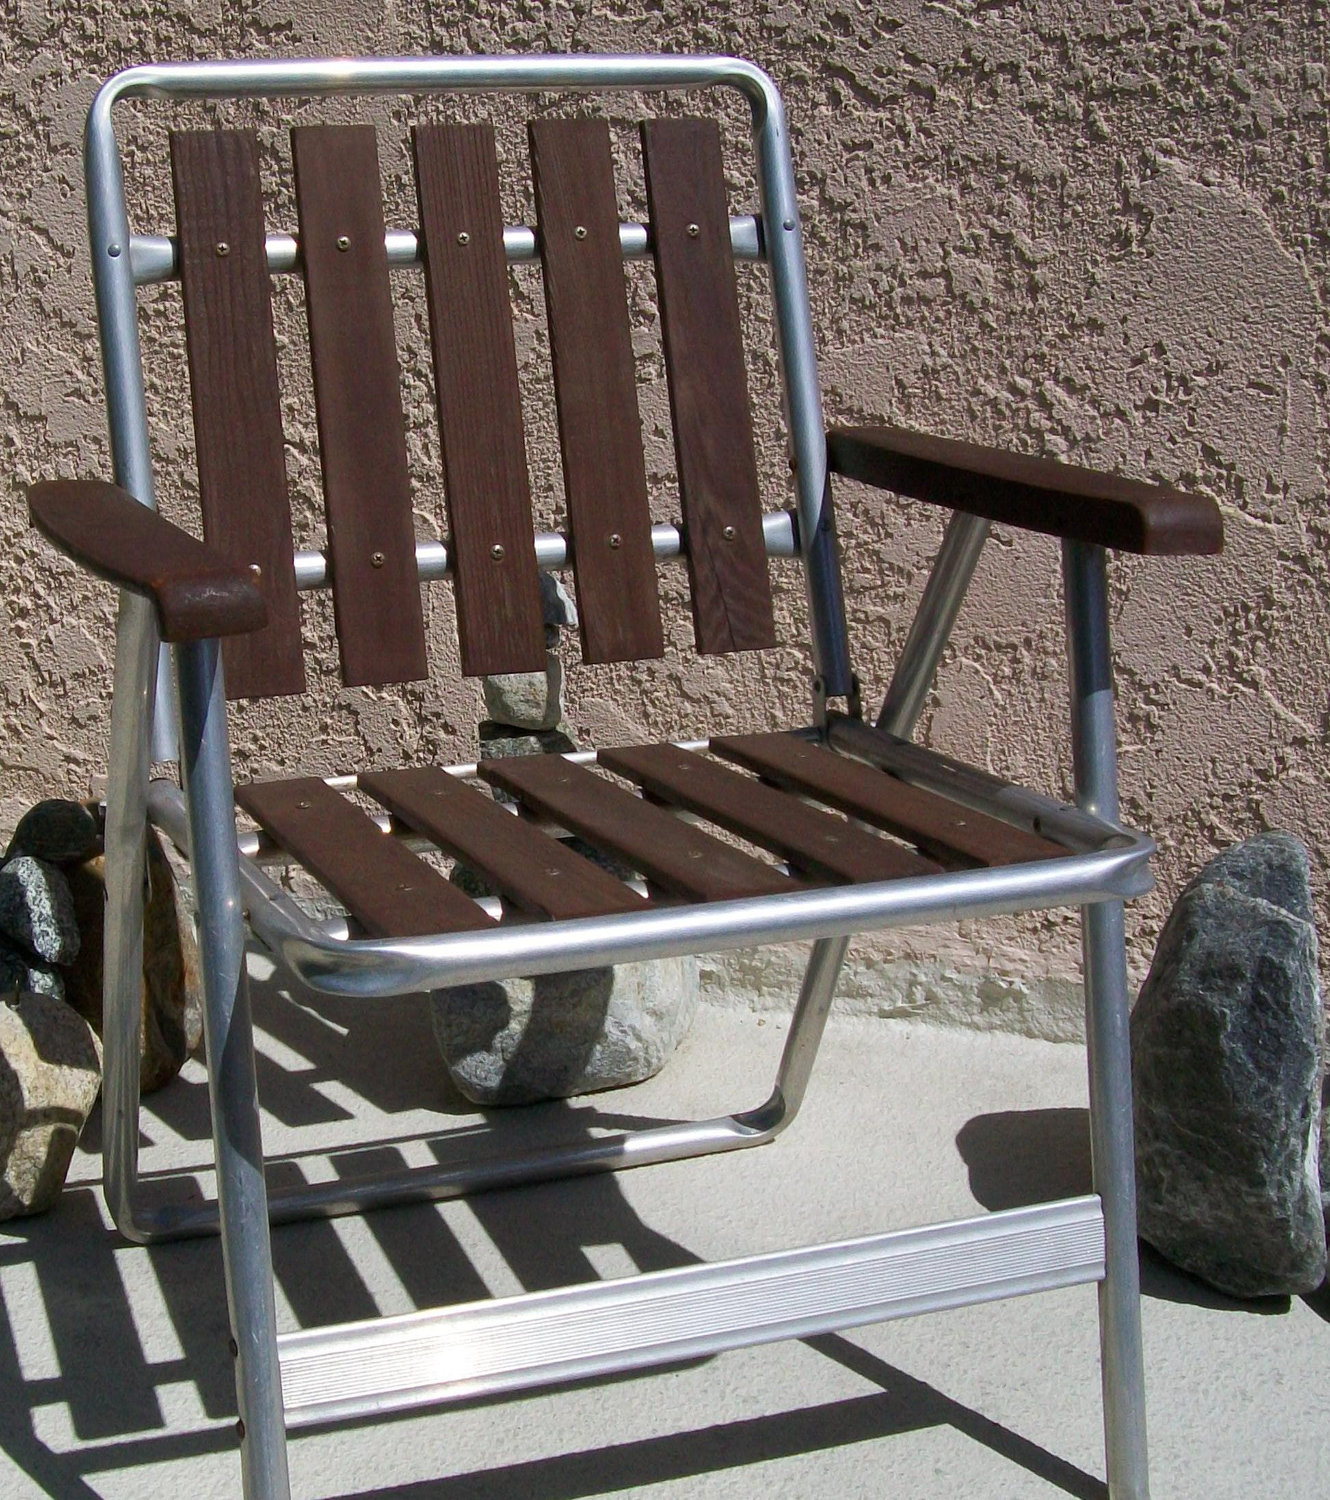 Folding Aluminum Lawn Chair3. Folding Aluminum Lawn Chair